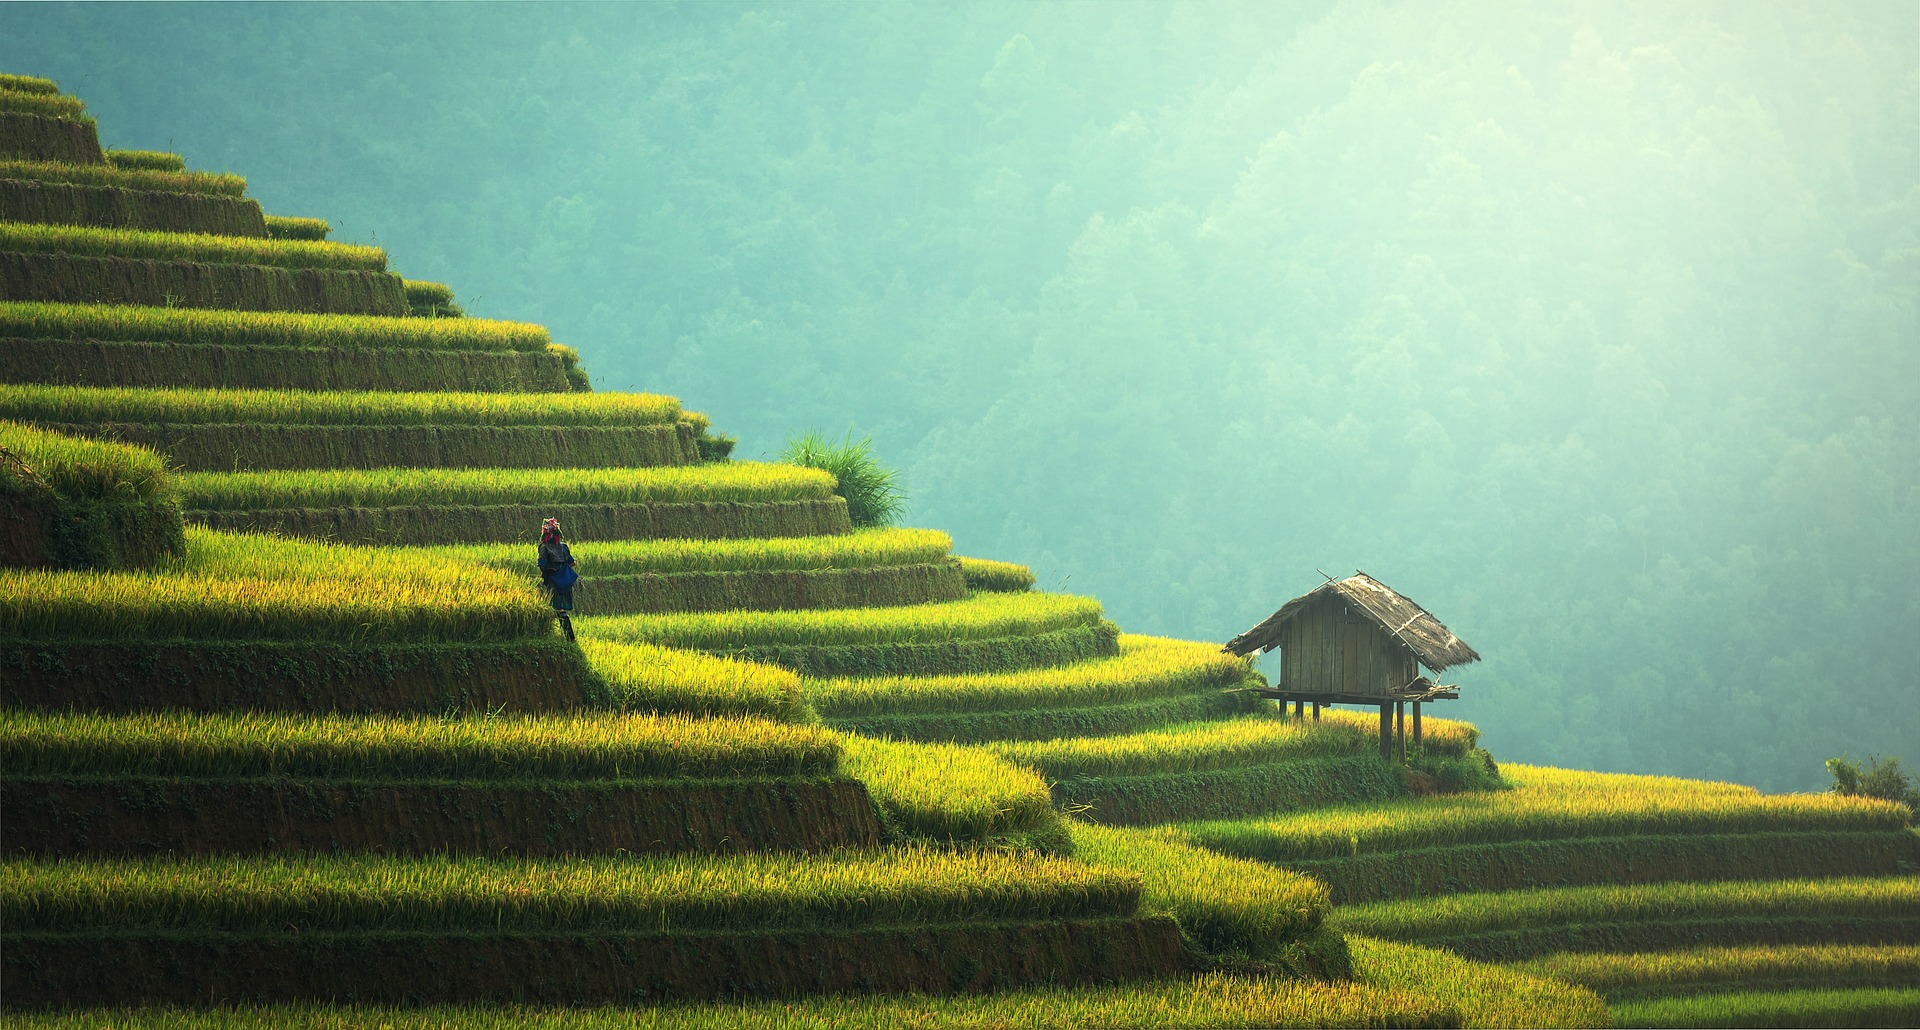 Rice plantation in asia photo